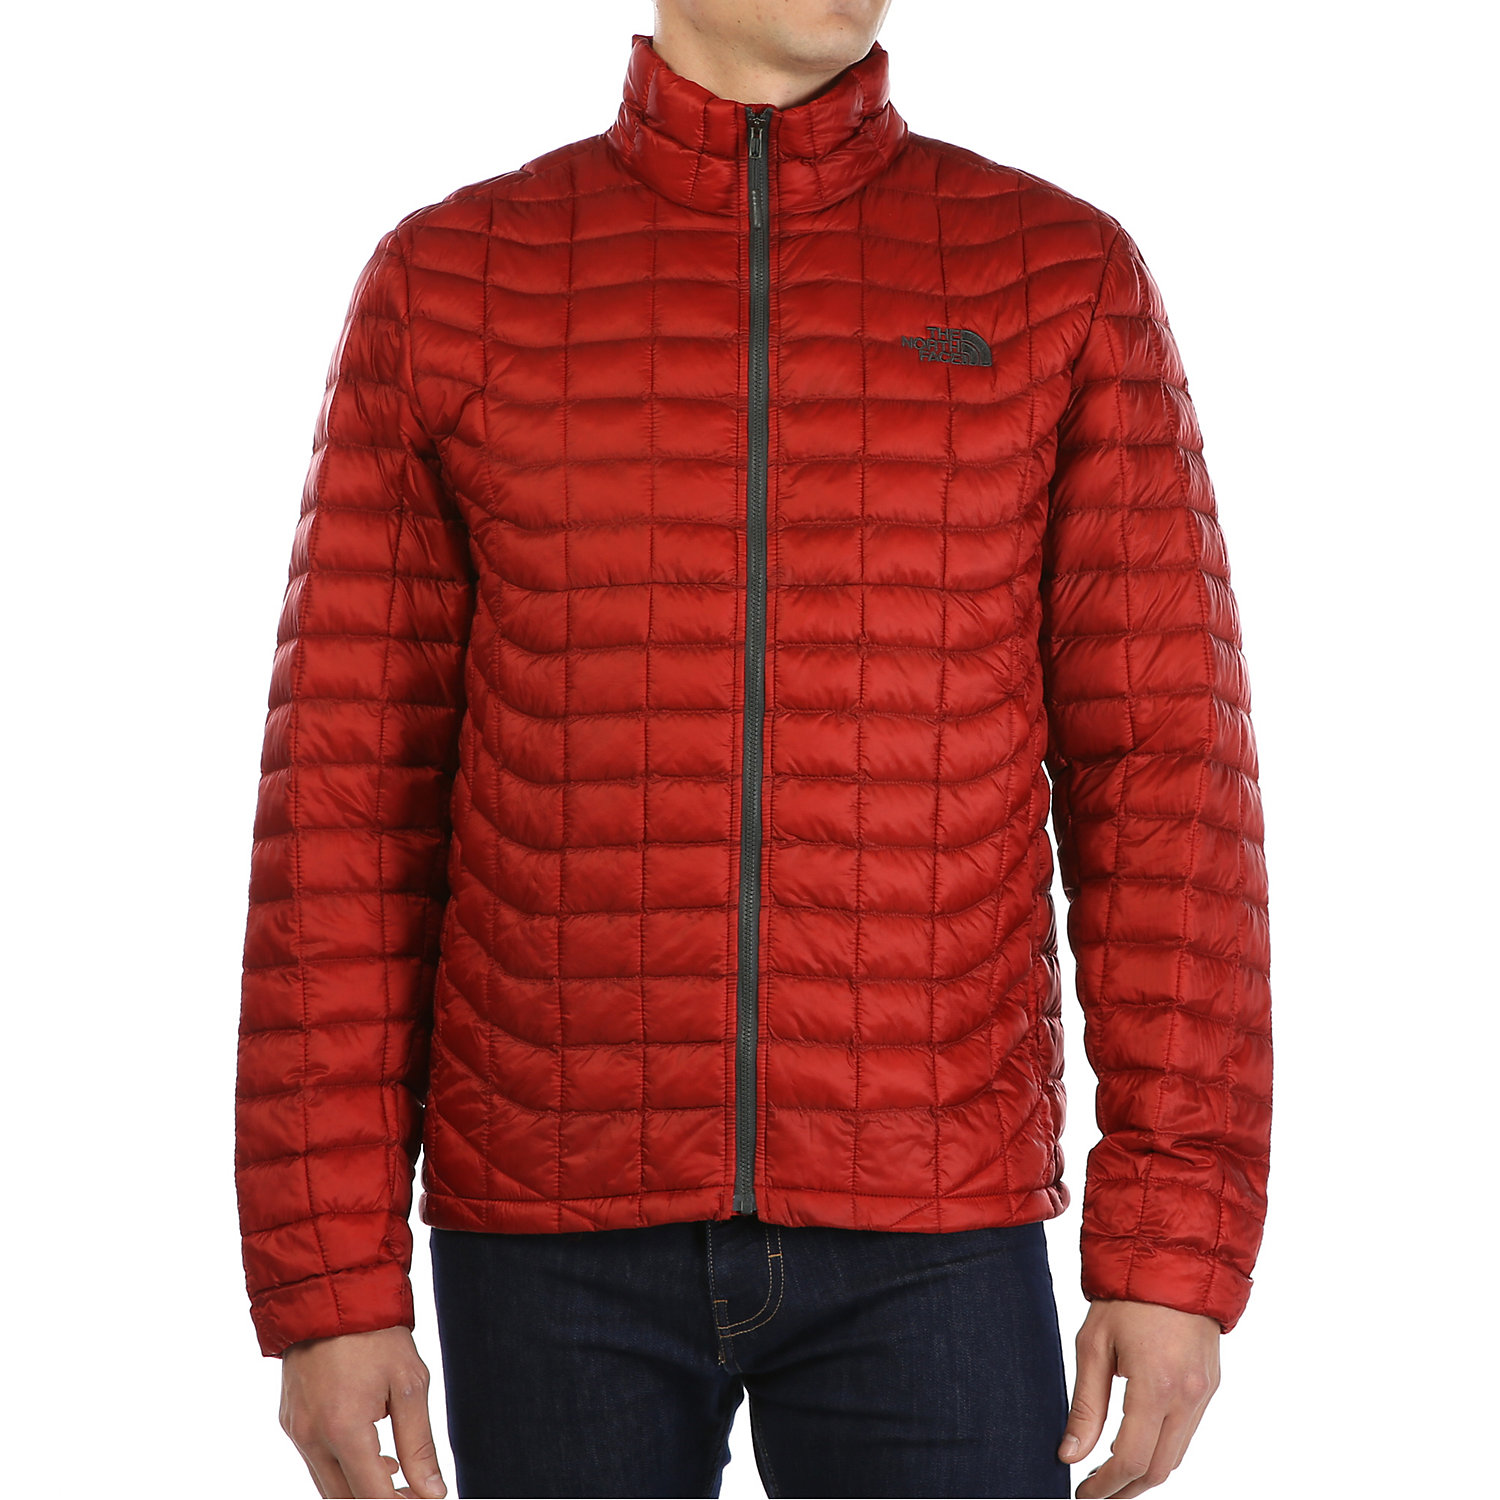 c966357d07c The North Face Men's ThermoBall Jacket - Moosejaw